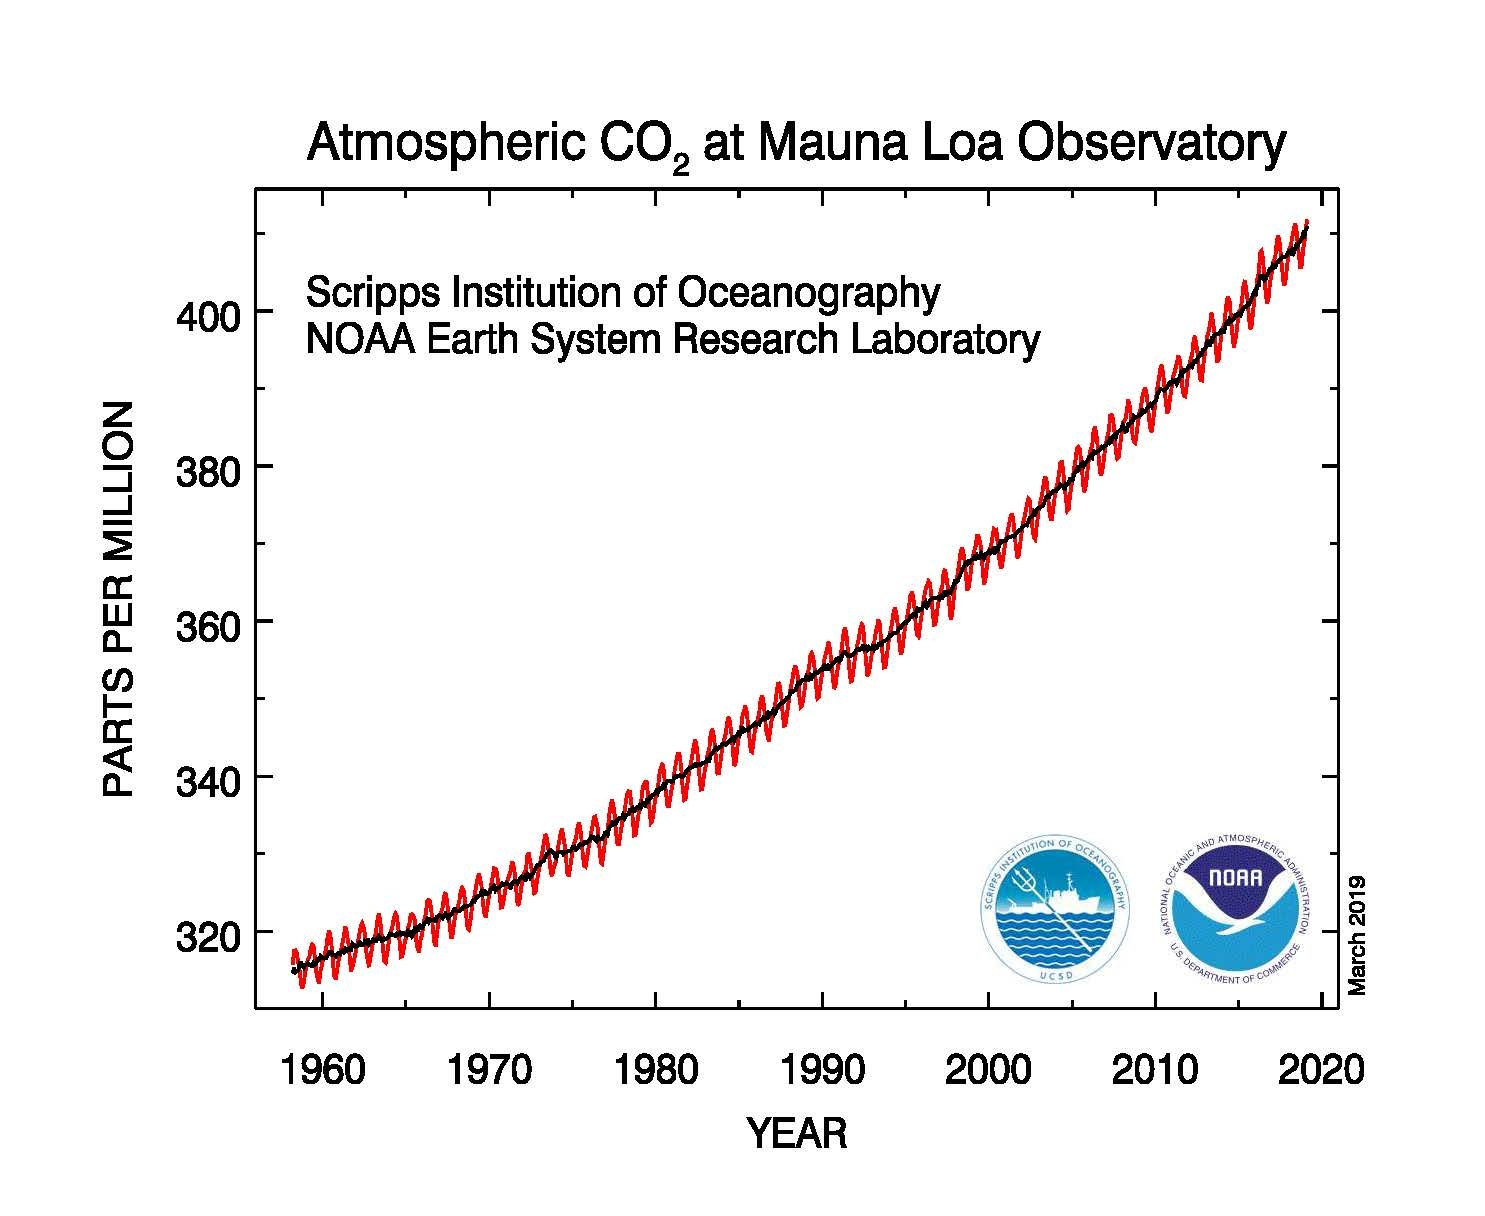 Atmospheric concentration of carbon dioxide measured at the Mauna Loa Observatory